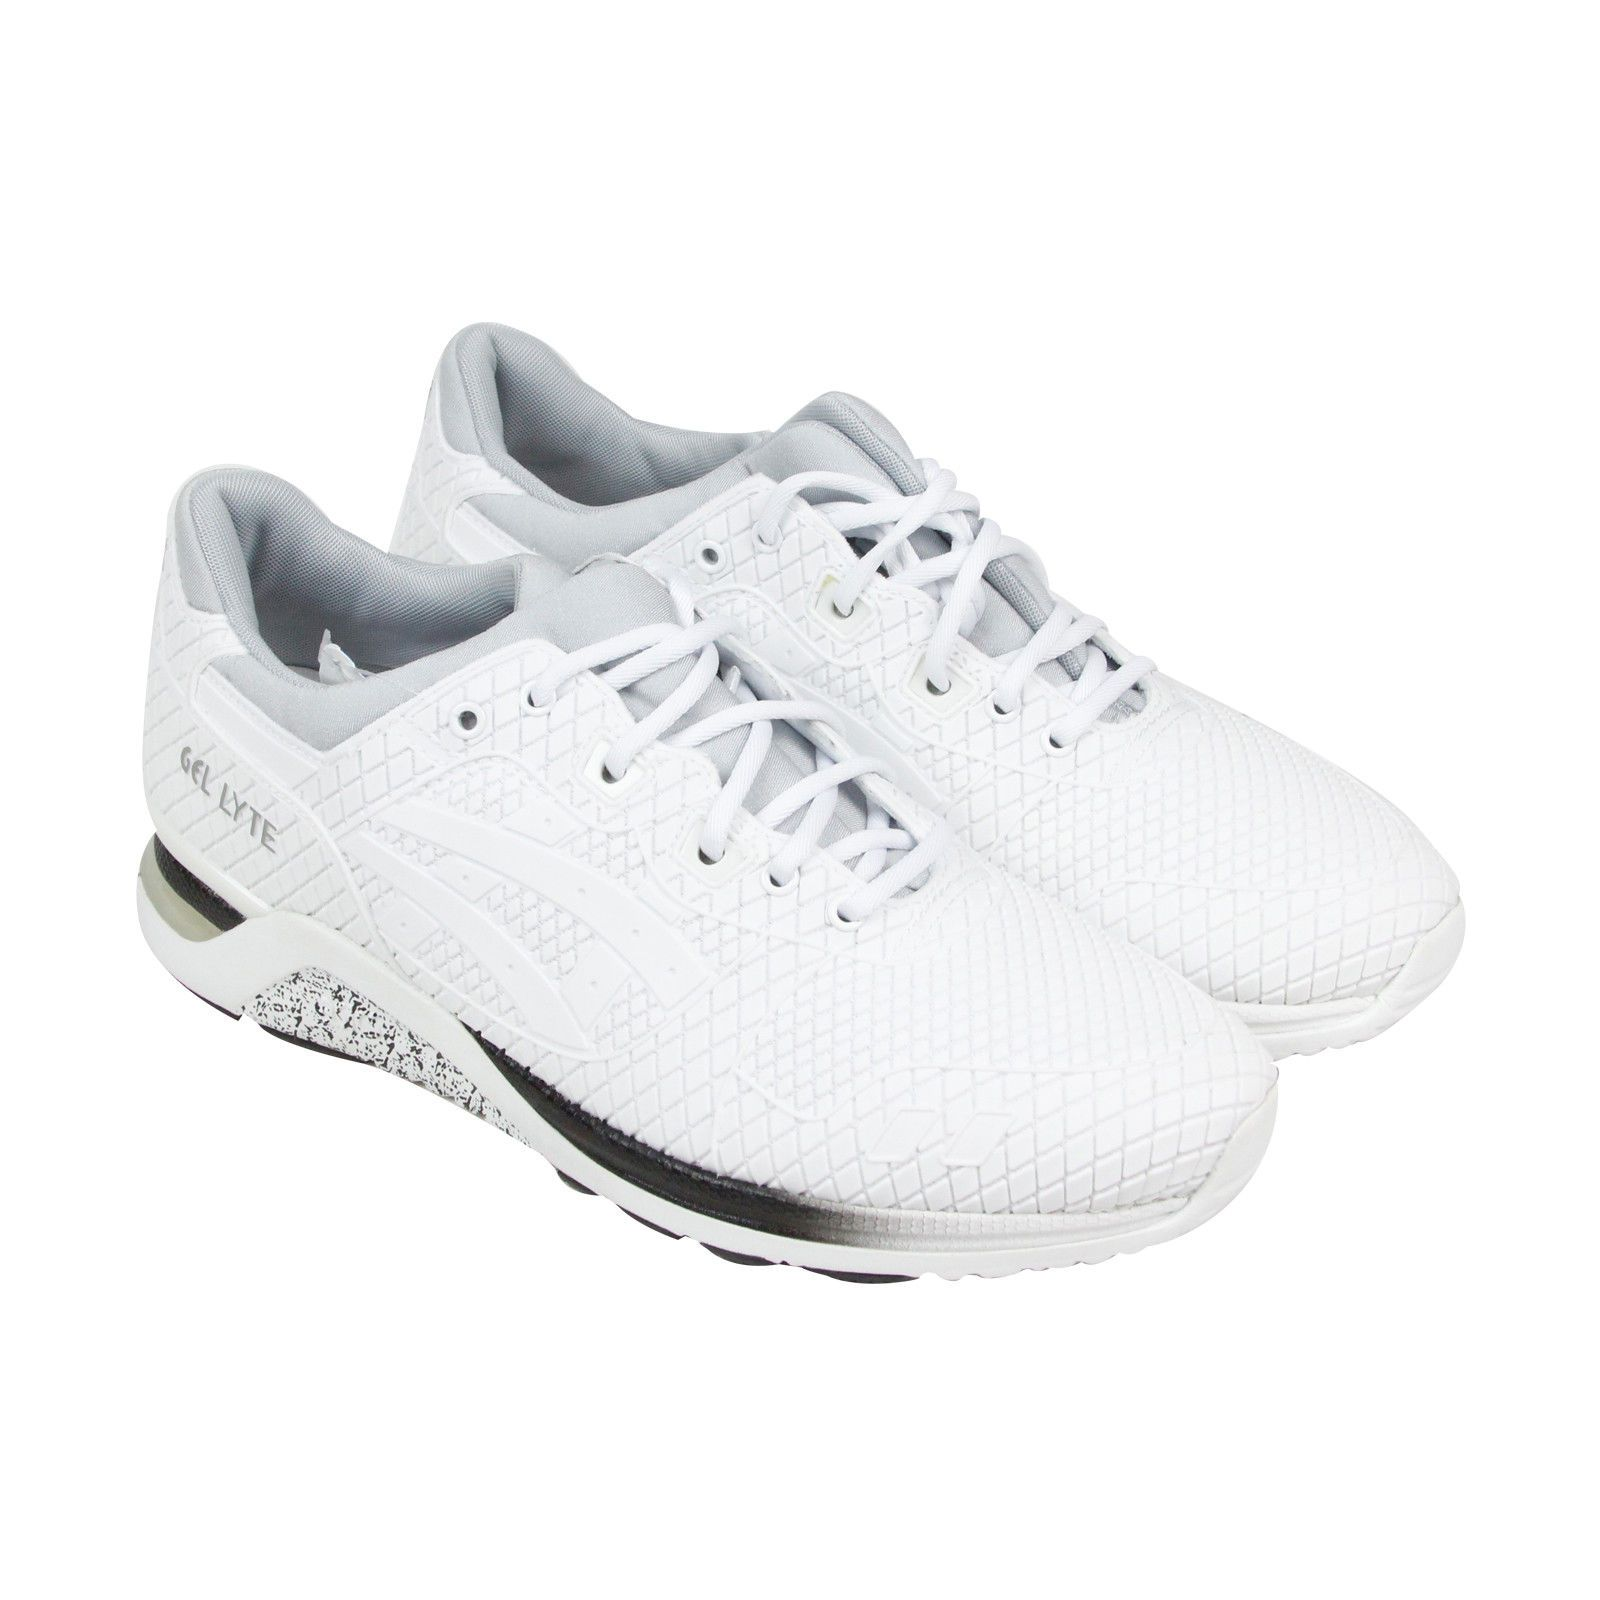 6890a2f55635d Asics Gel-Lyte Evo Mens White Mesh Sneakers Lace Up Shoes